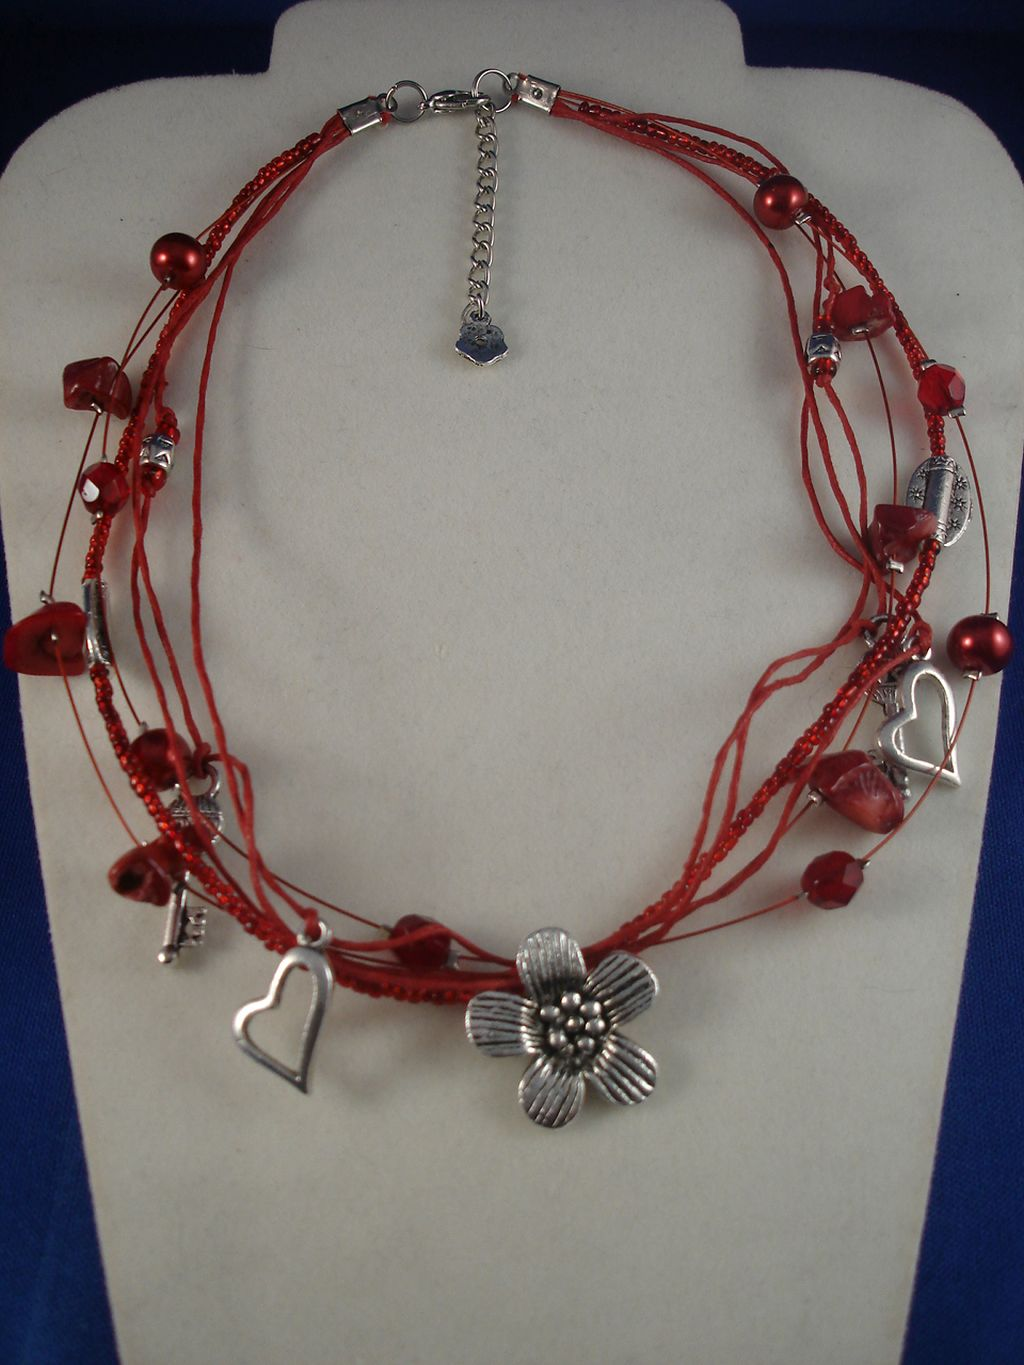 Red Necklace, Genuine Stones, Metal Hearts, Flowers, Keys Charms, Beads, Anti-allergic Jewelry